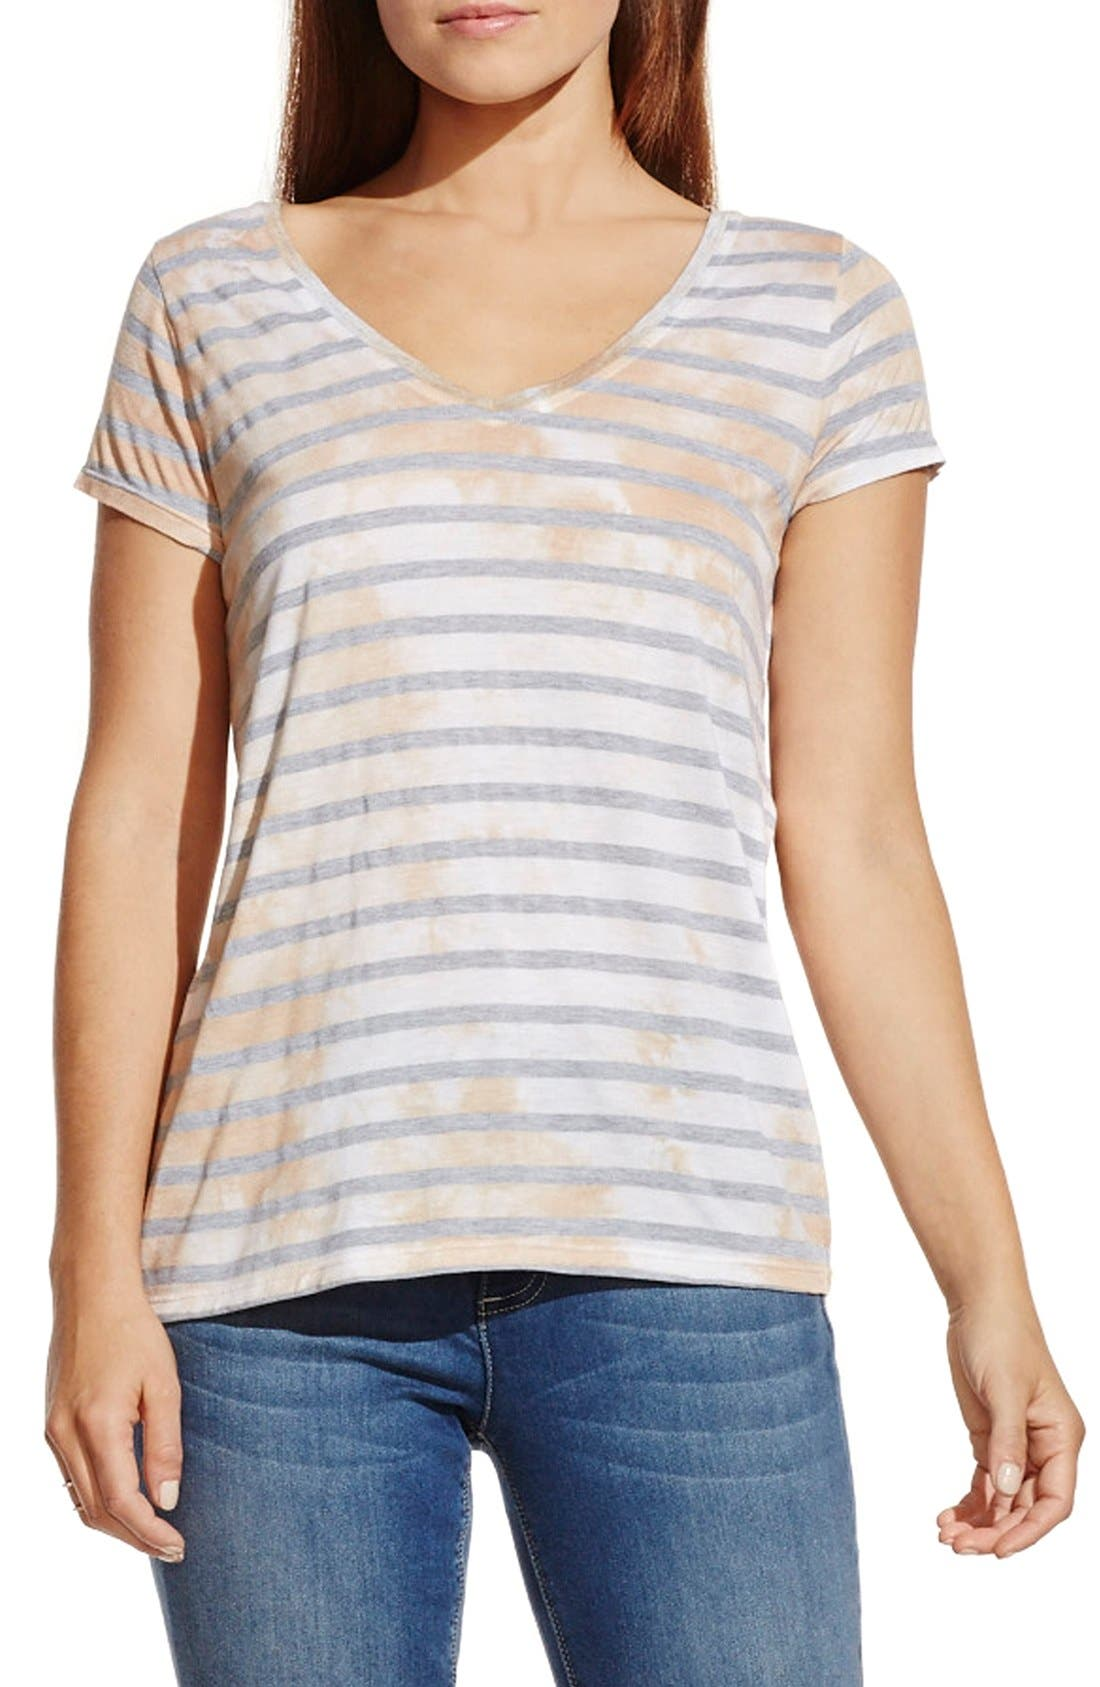 Alternate Image 1 Selected - Two by Vince Camuto 'Painterly Blotches' Stripe Tee